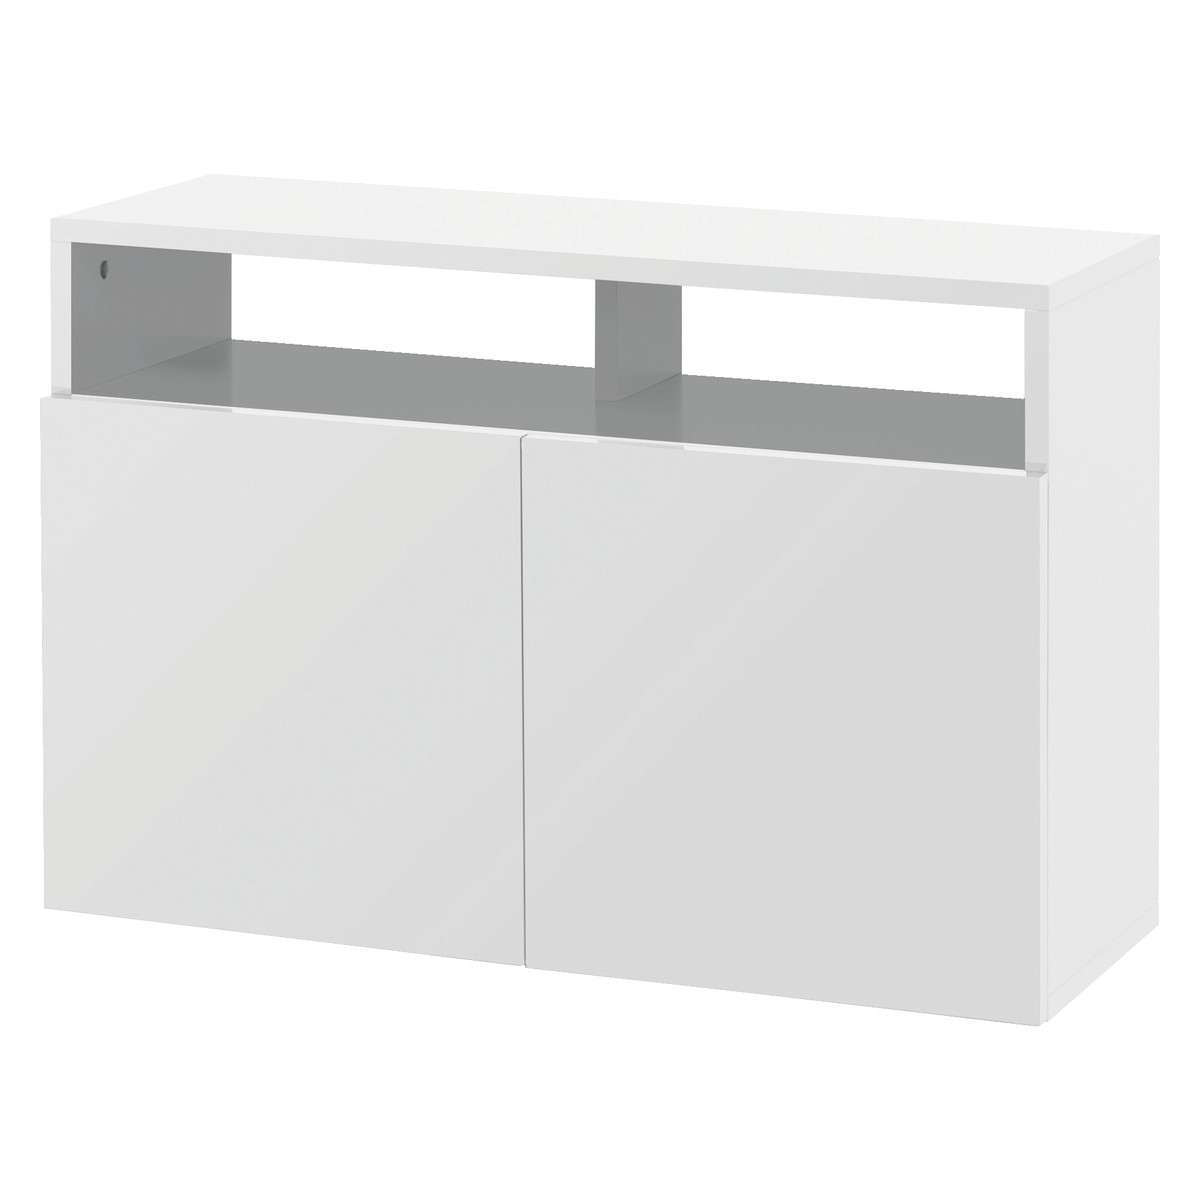 Kubrik White High Gloss Small Sideboard | Buy Now At Habitat Uk Within White High Gloss Sideboards (Gallery 7 of 20)